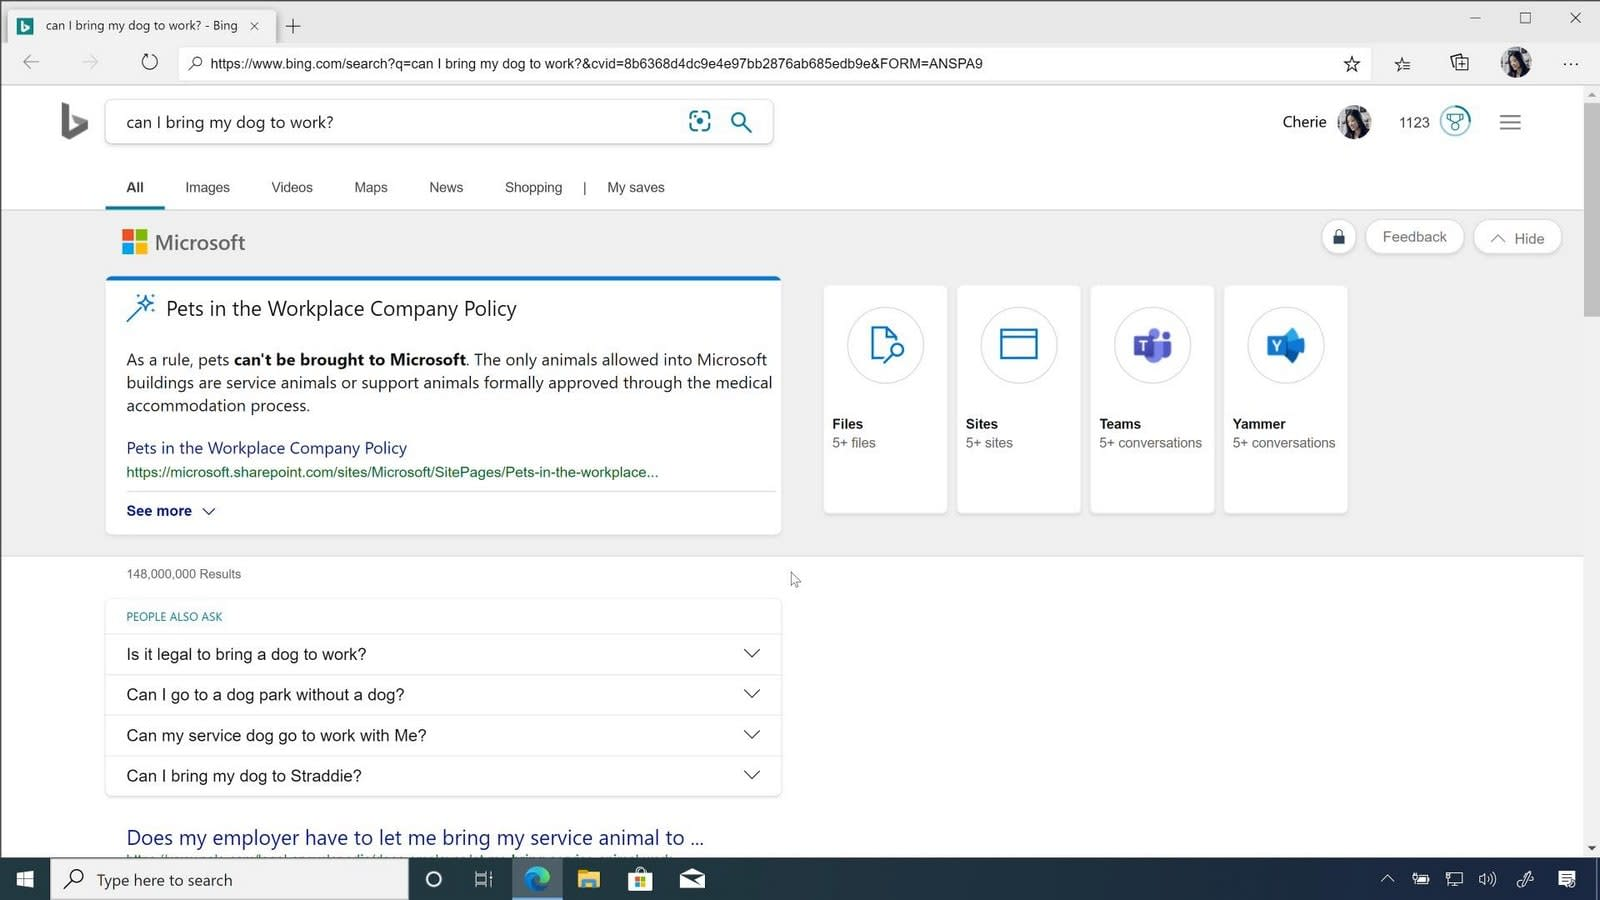 Chromium Edge and Bing